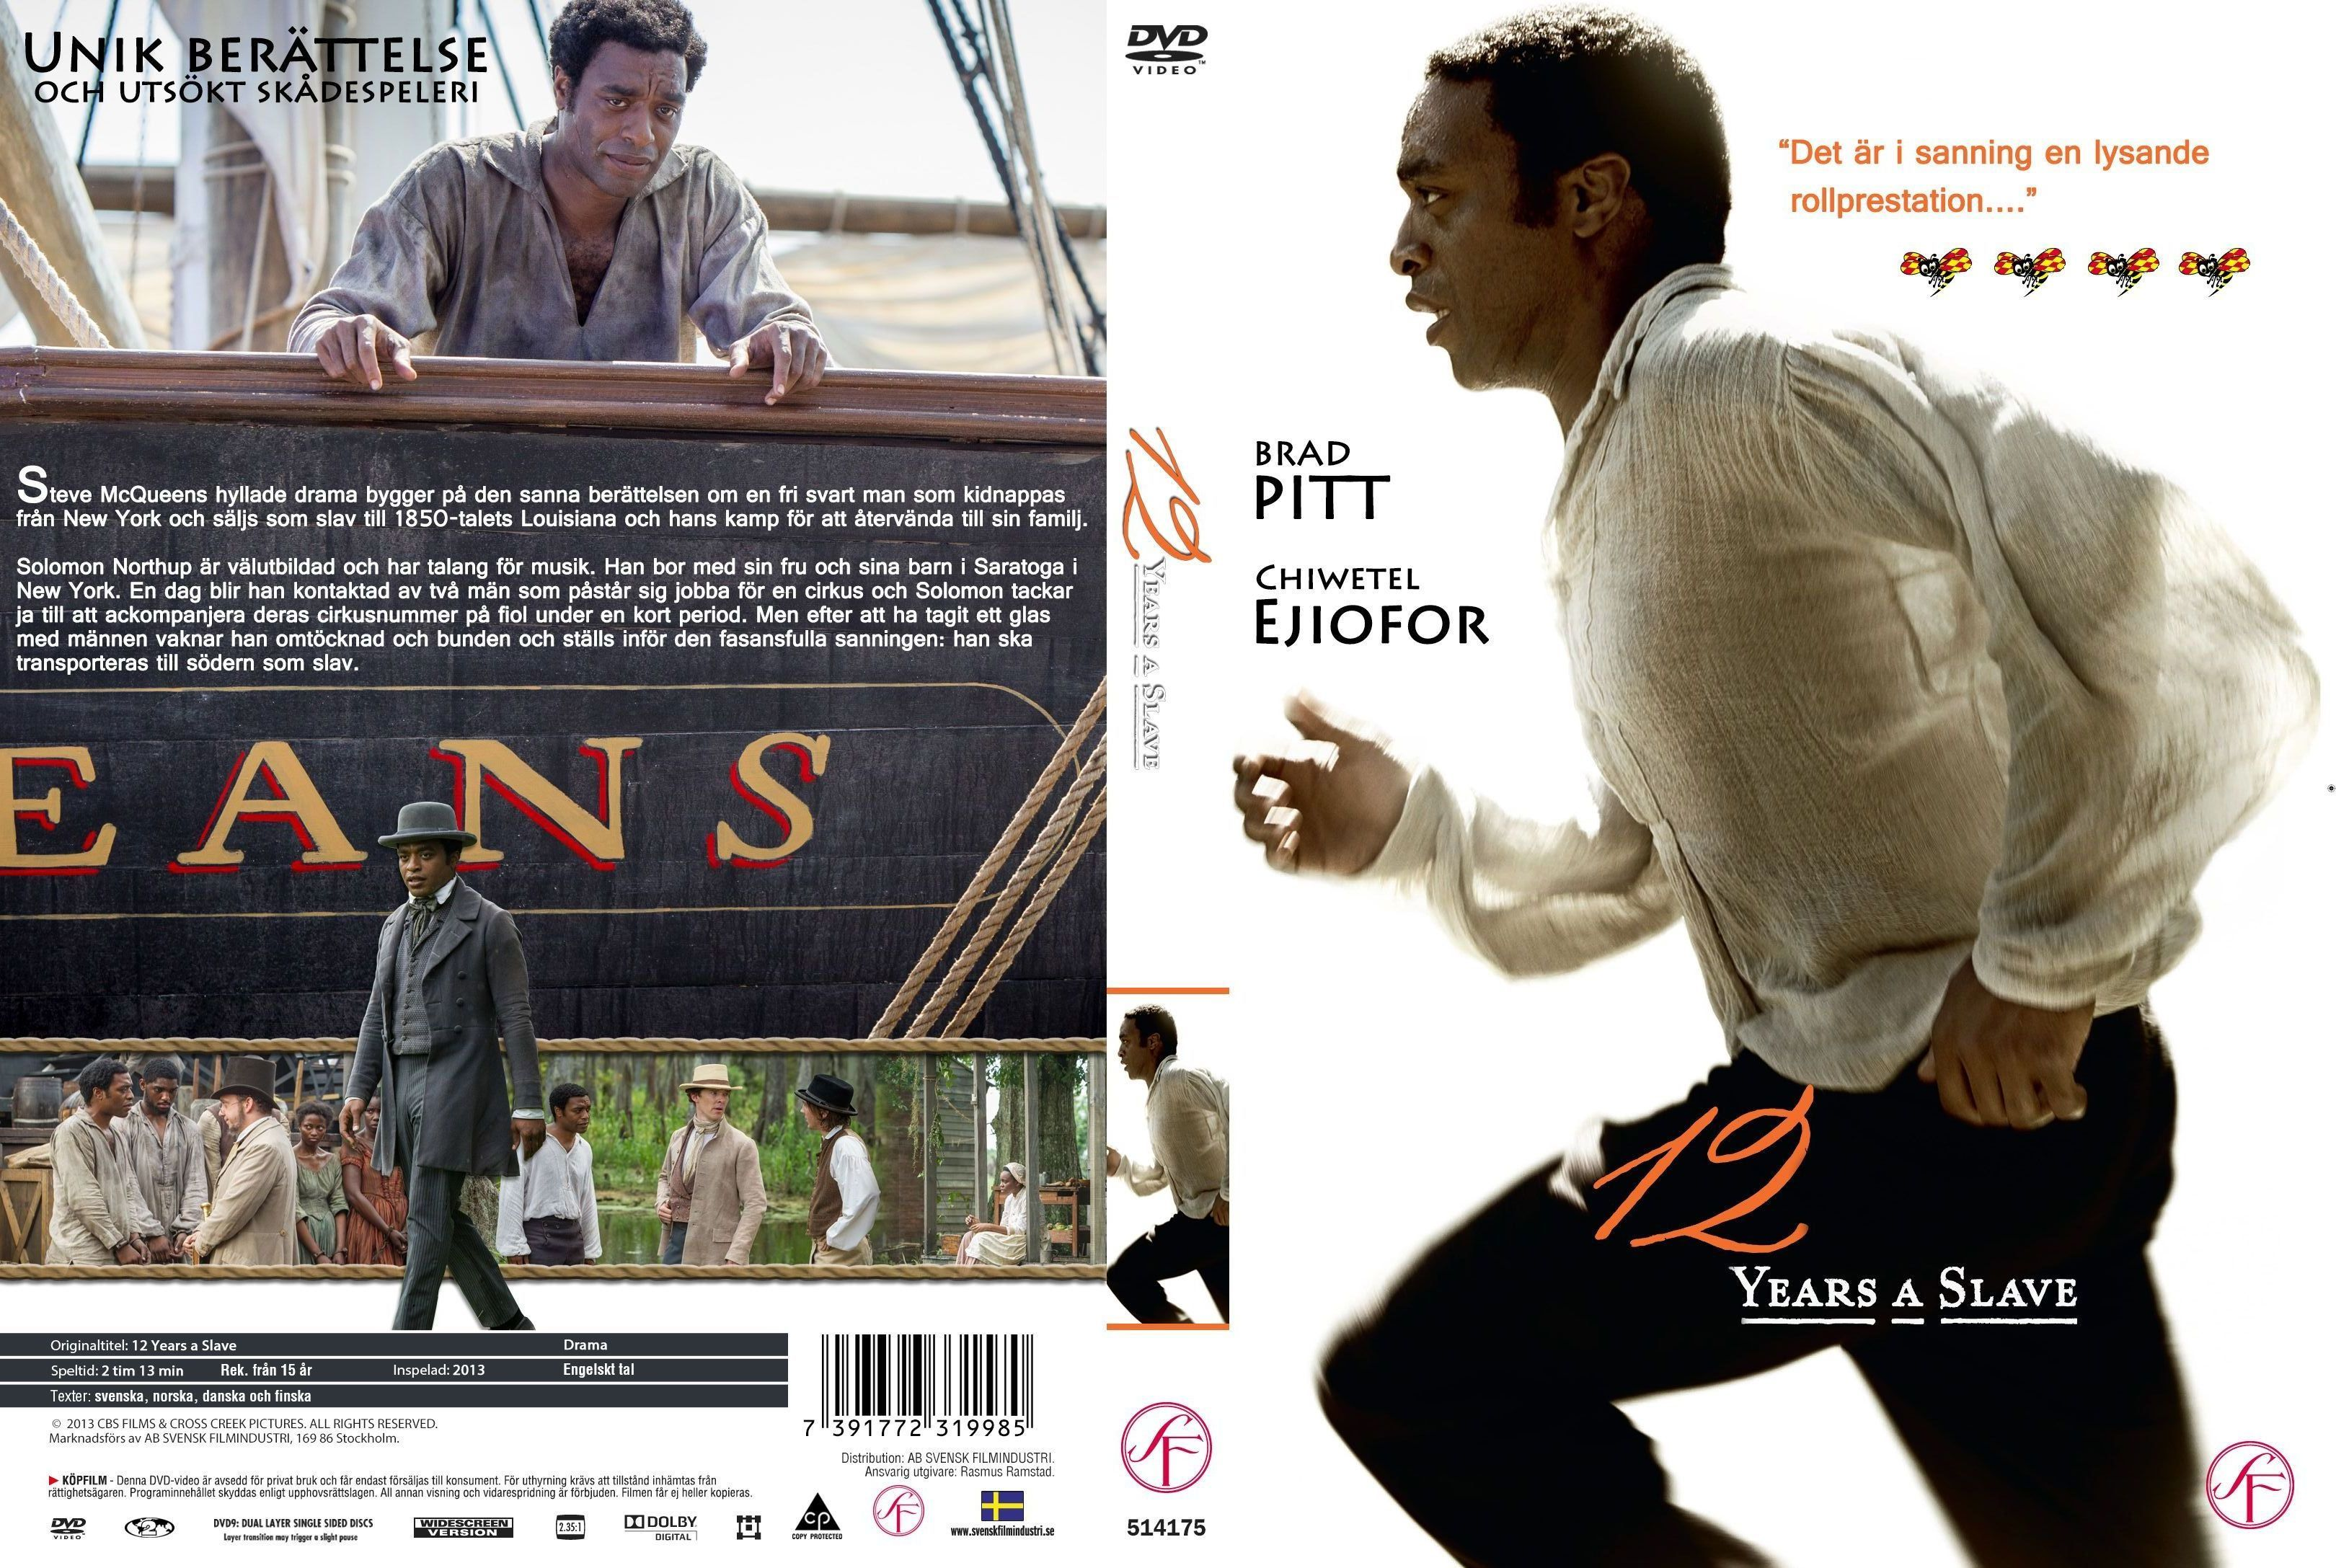 Covers Box Sk 12 Years A Slave 2013 High Quality Dvd Blueray Movie